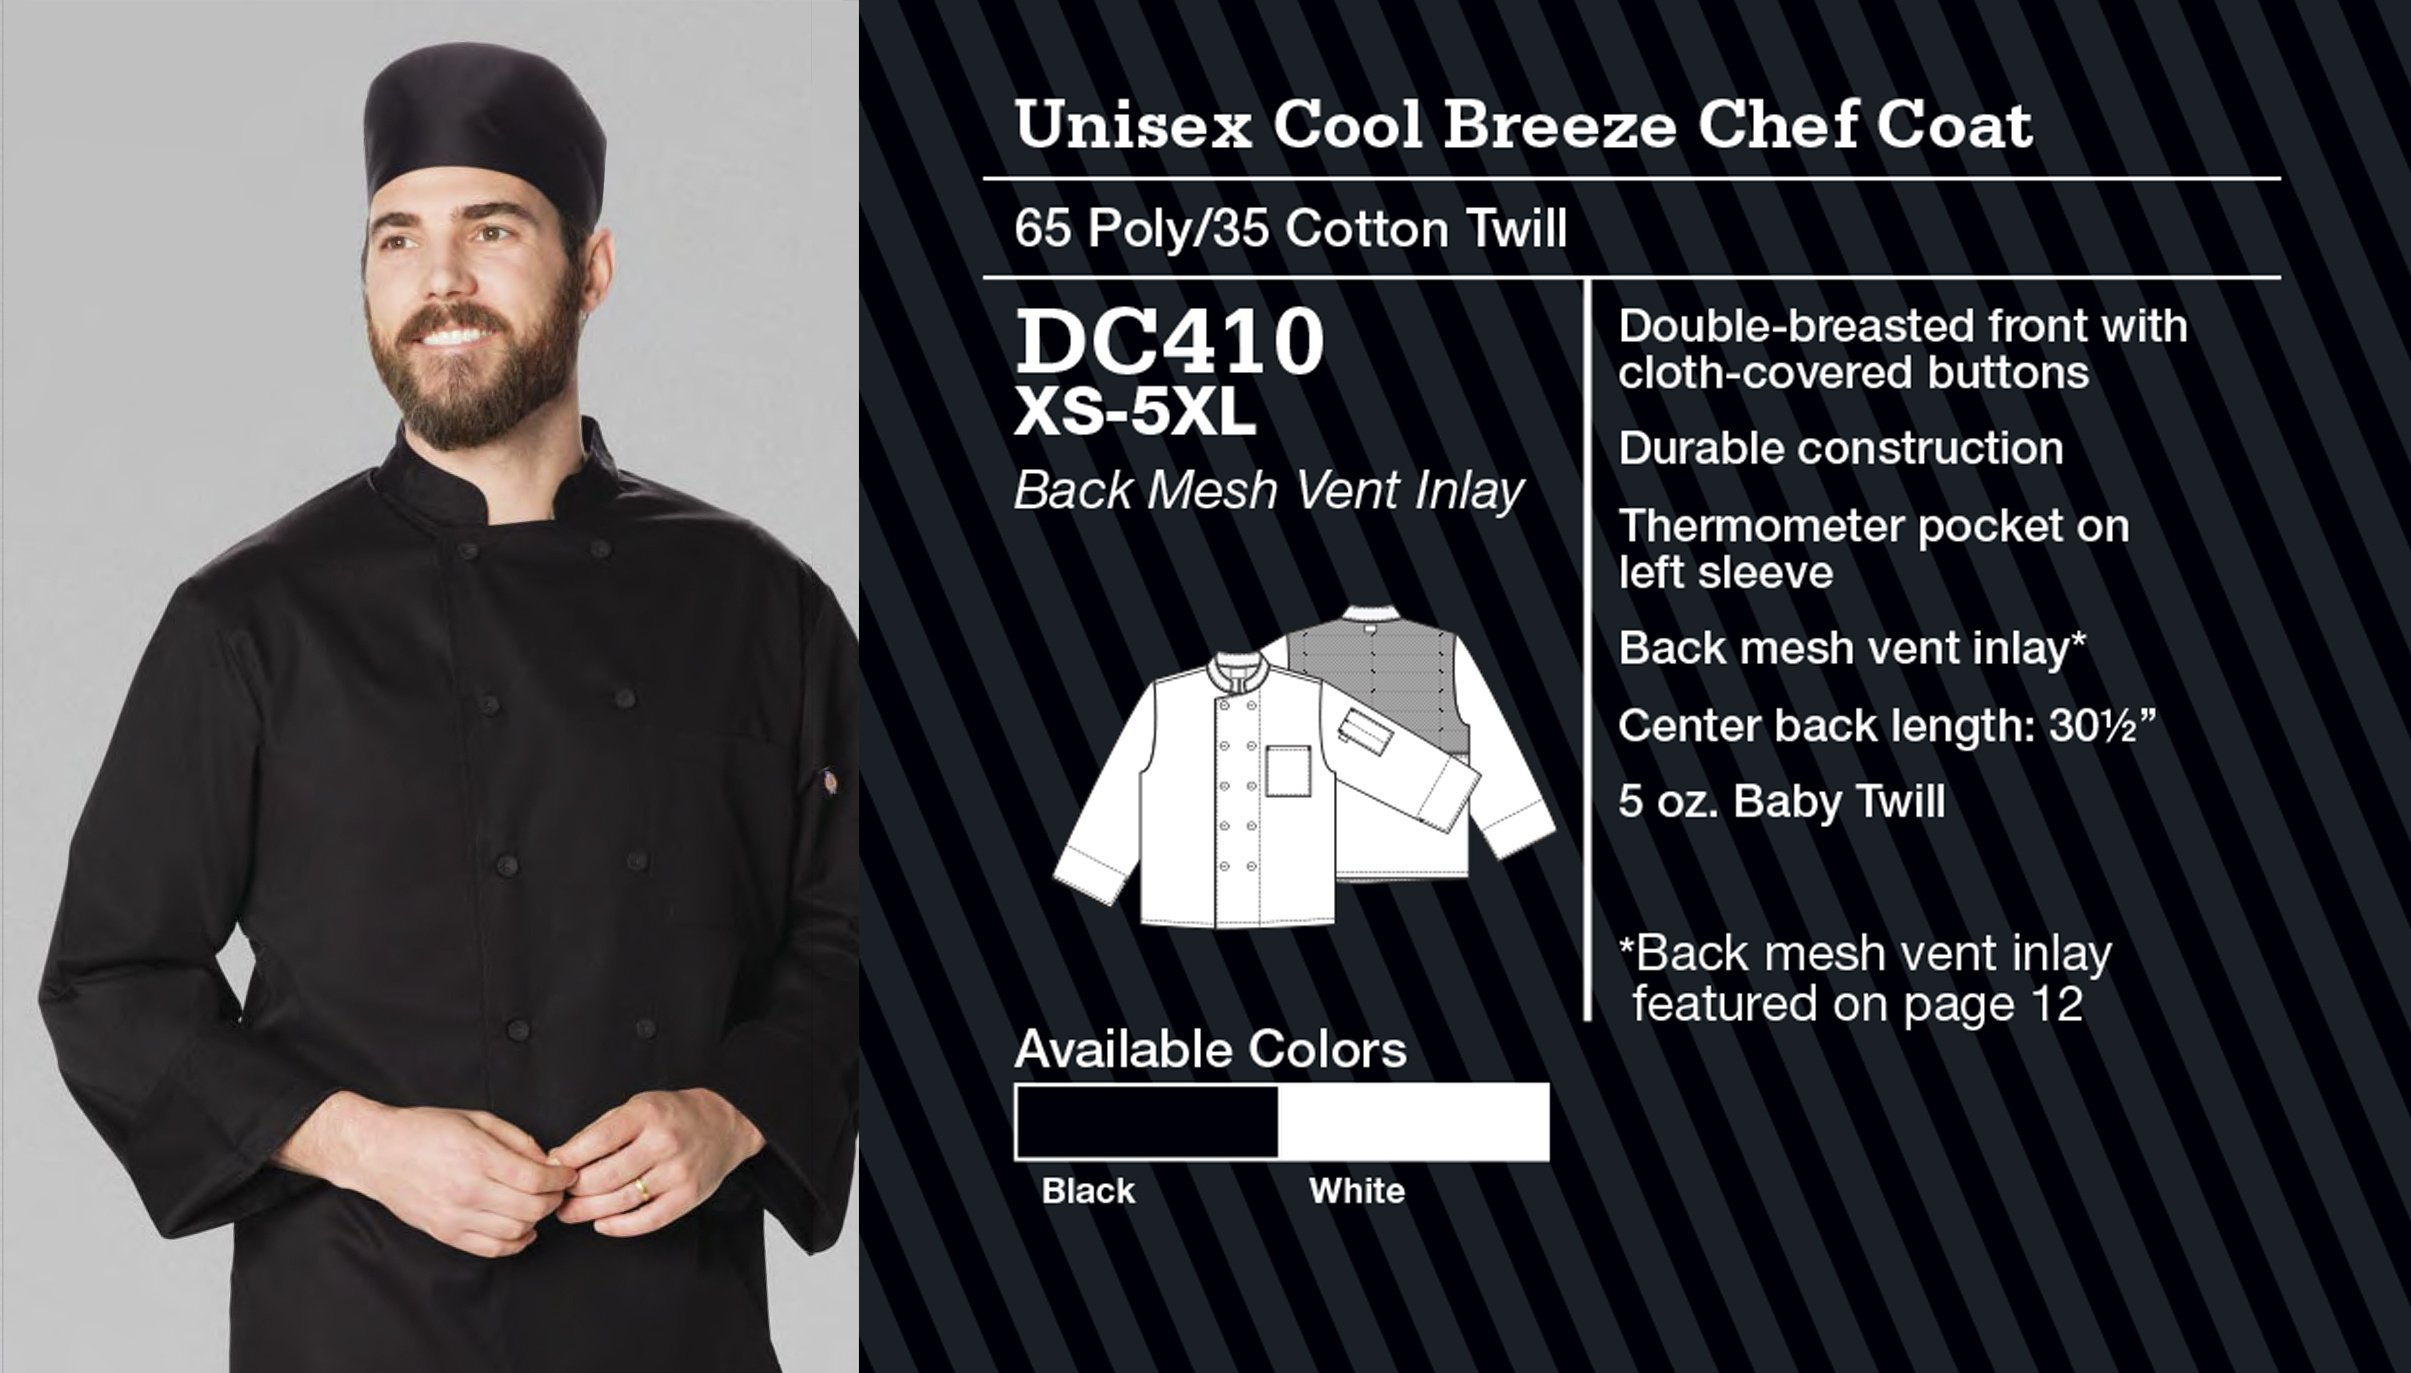 Abrigo de Chef Unisex Cool Breeze. DC410.